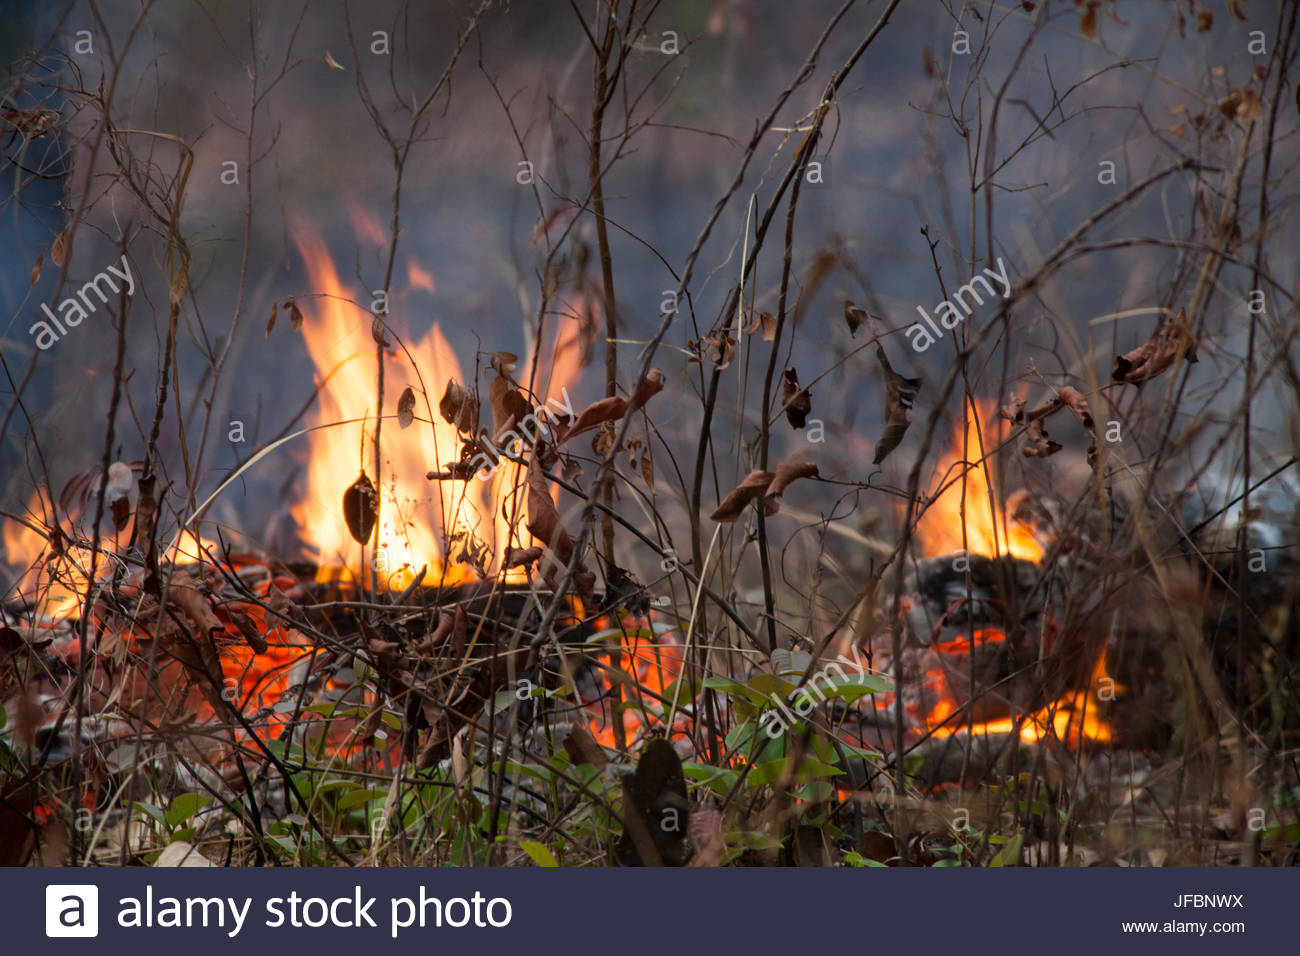 Fire burning in a deciduous dipterocarp forest. Villagers burn large trees to clear the area for agriculture. - Stock Image